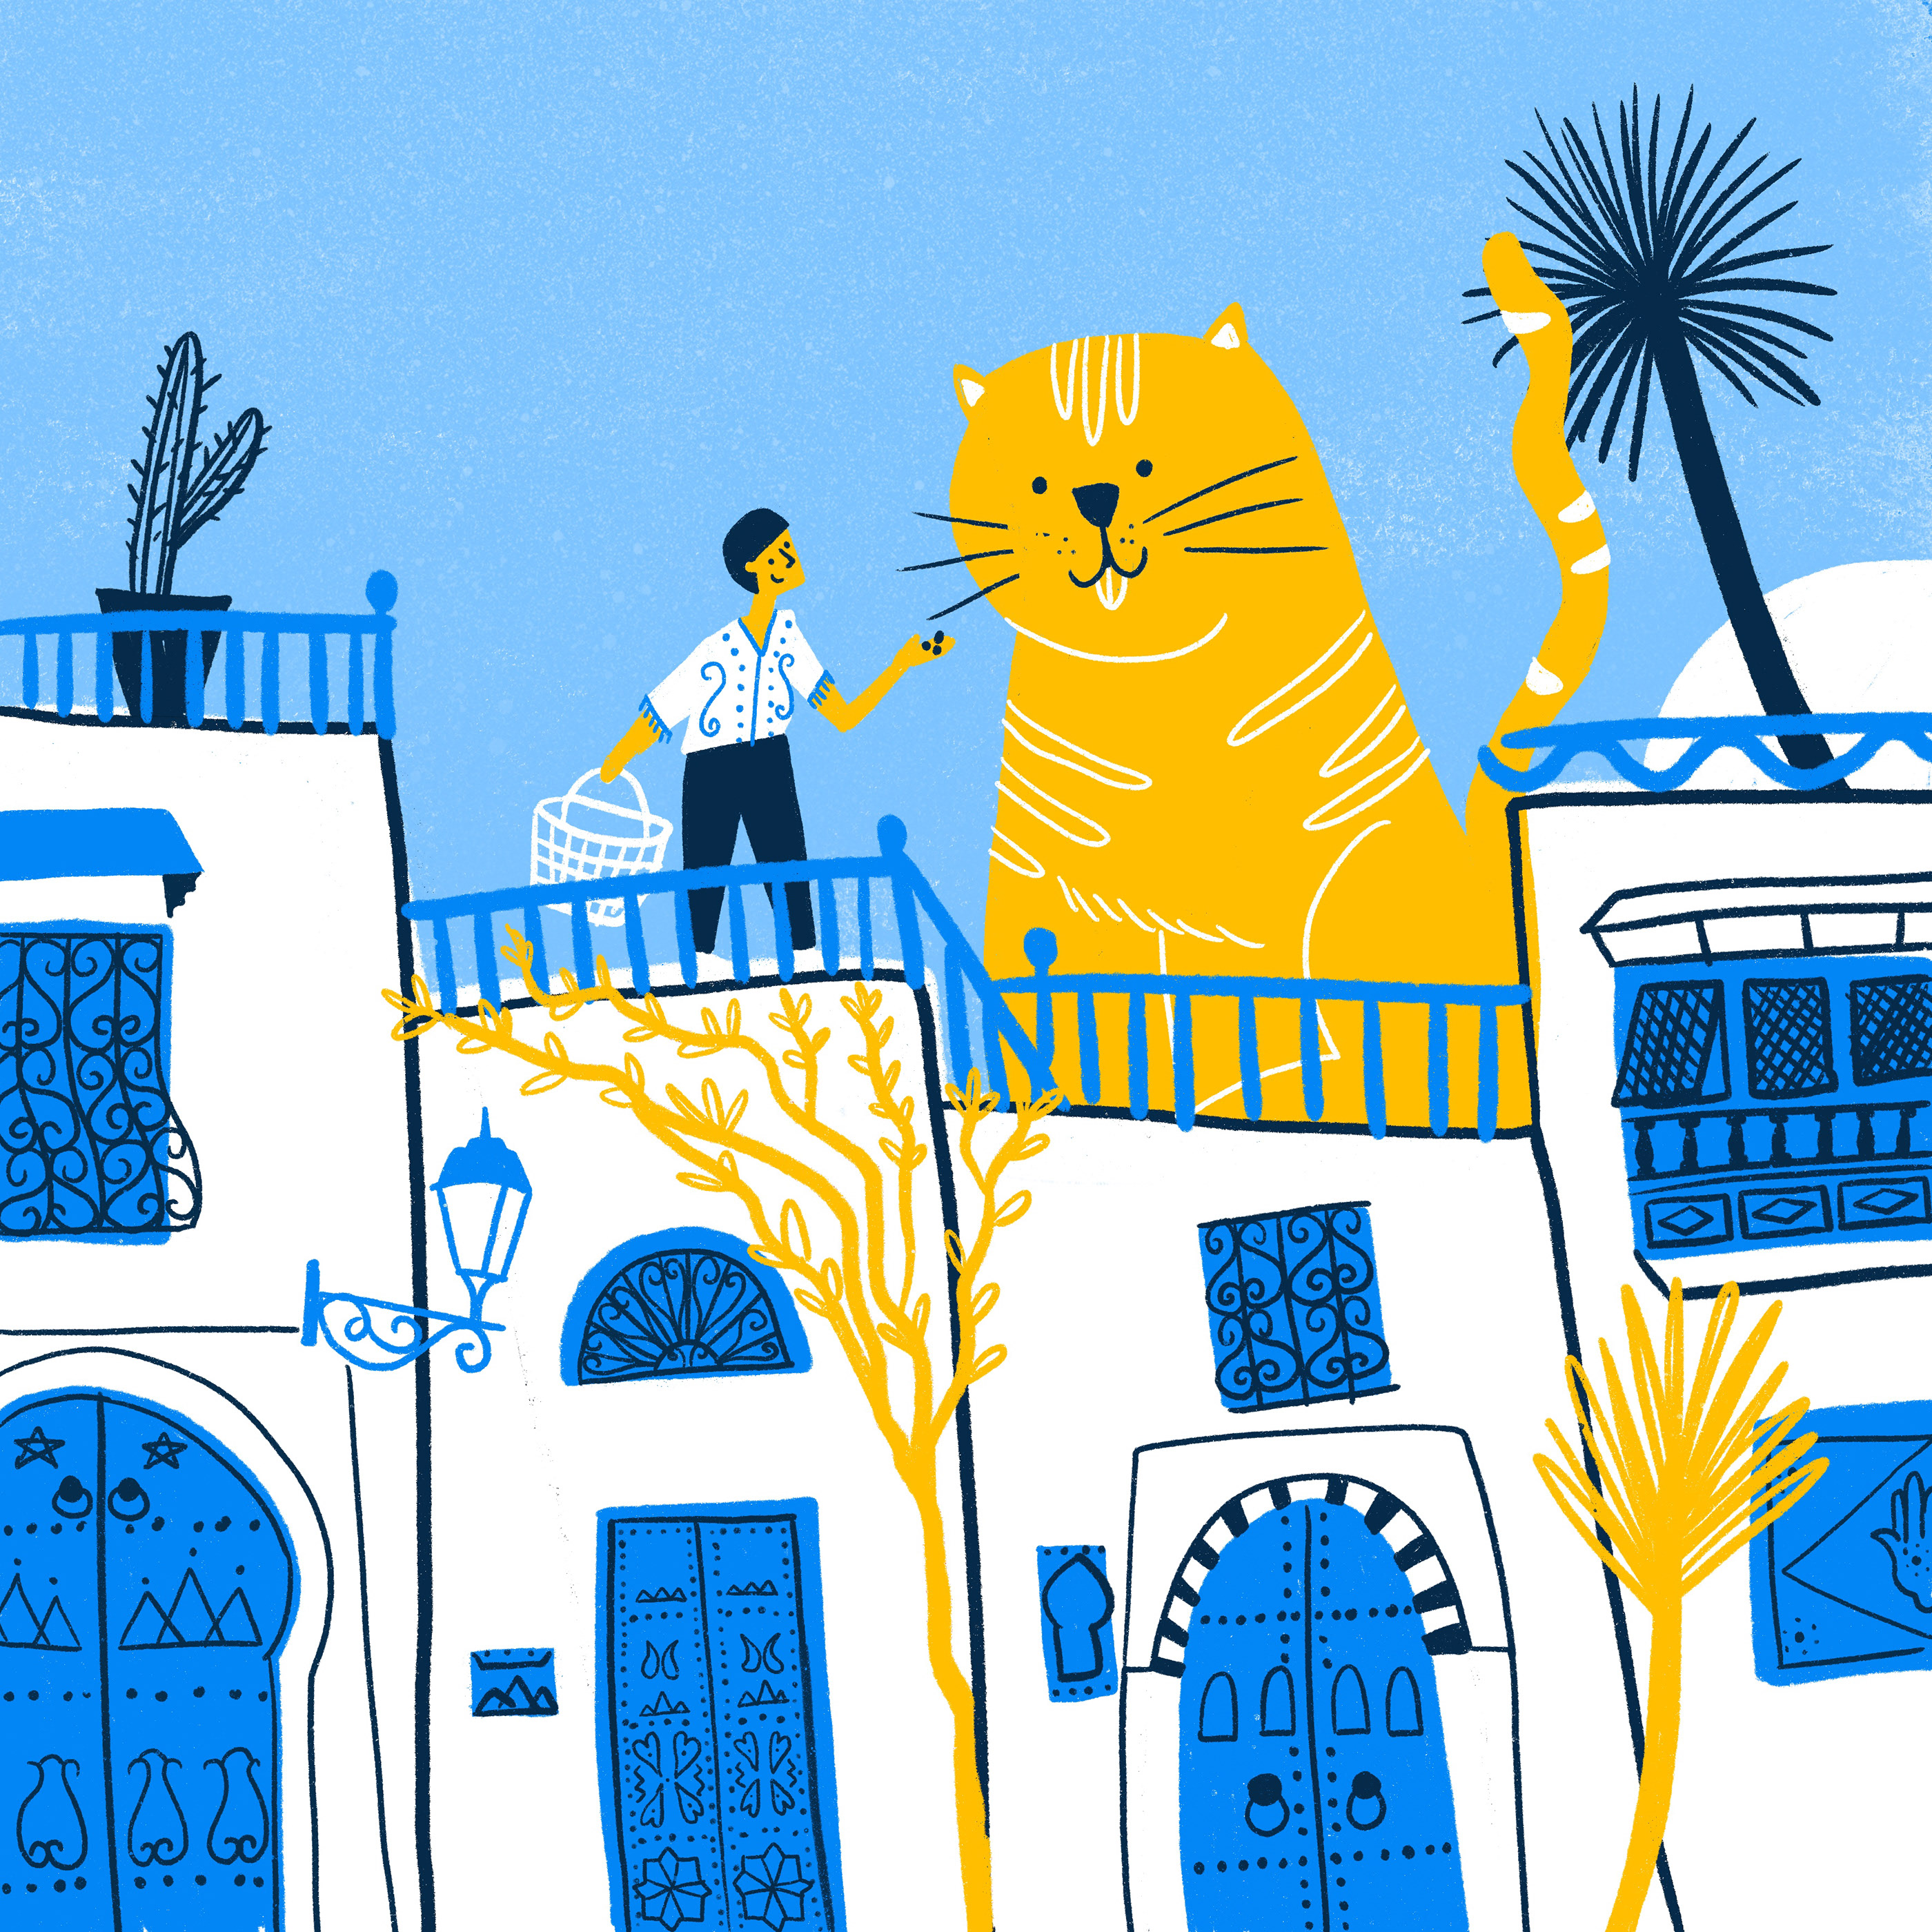 Sidi Bou Said illustration